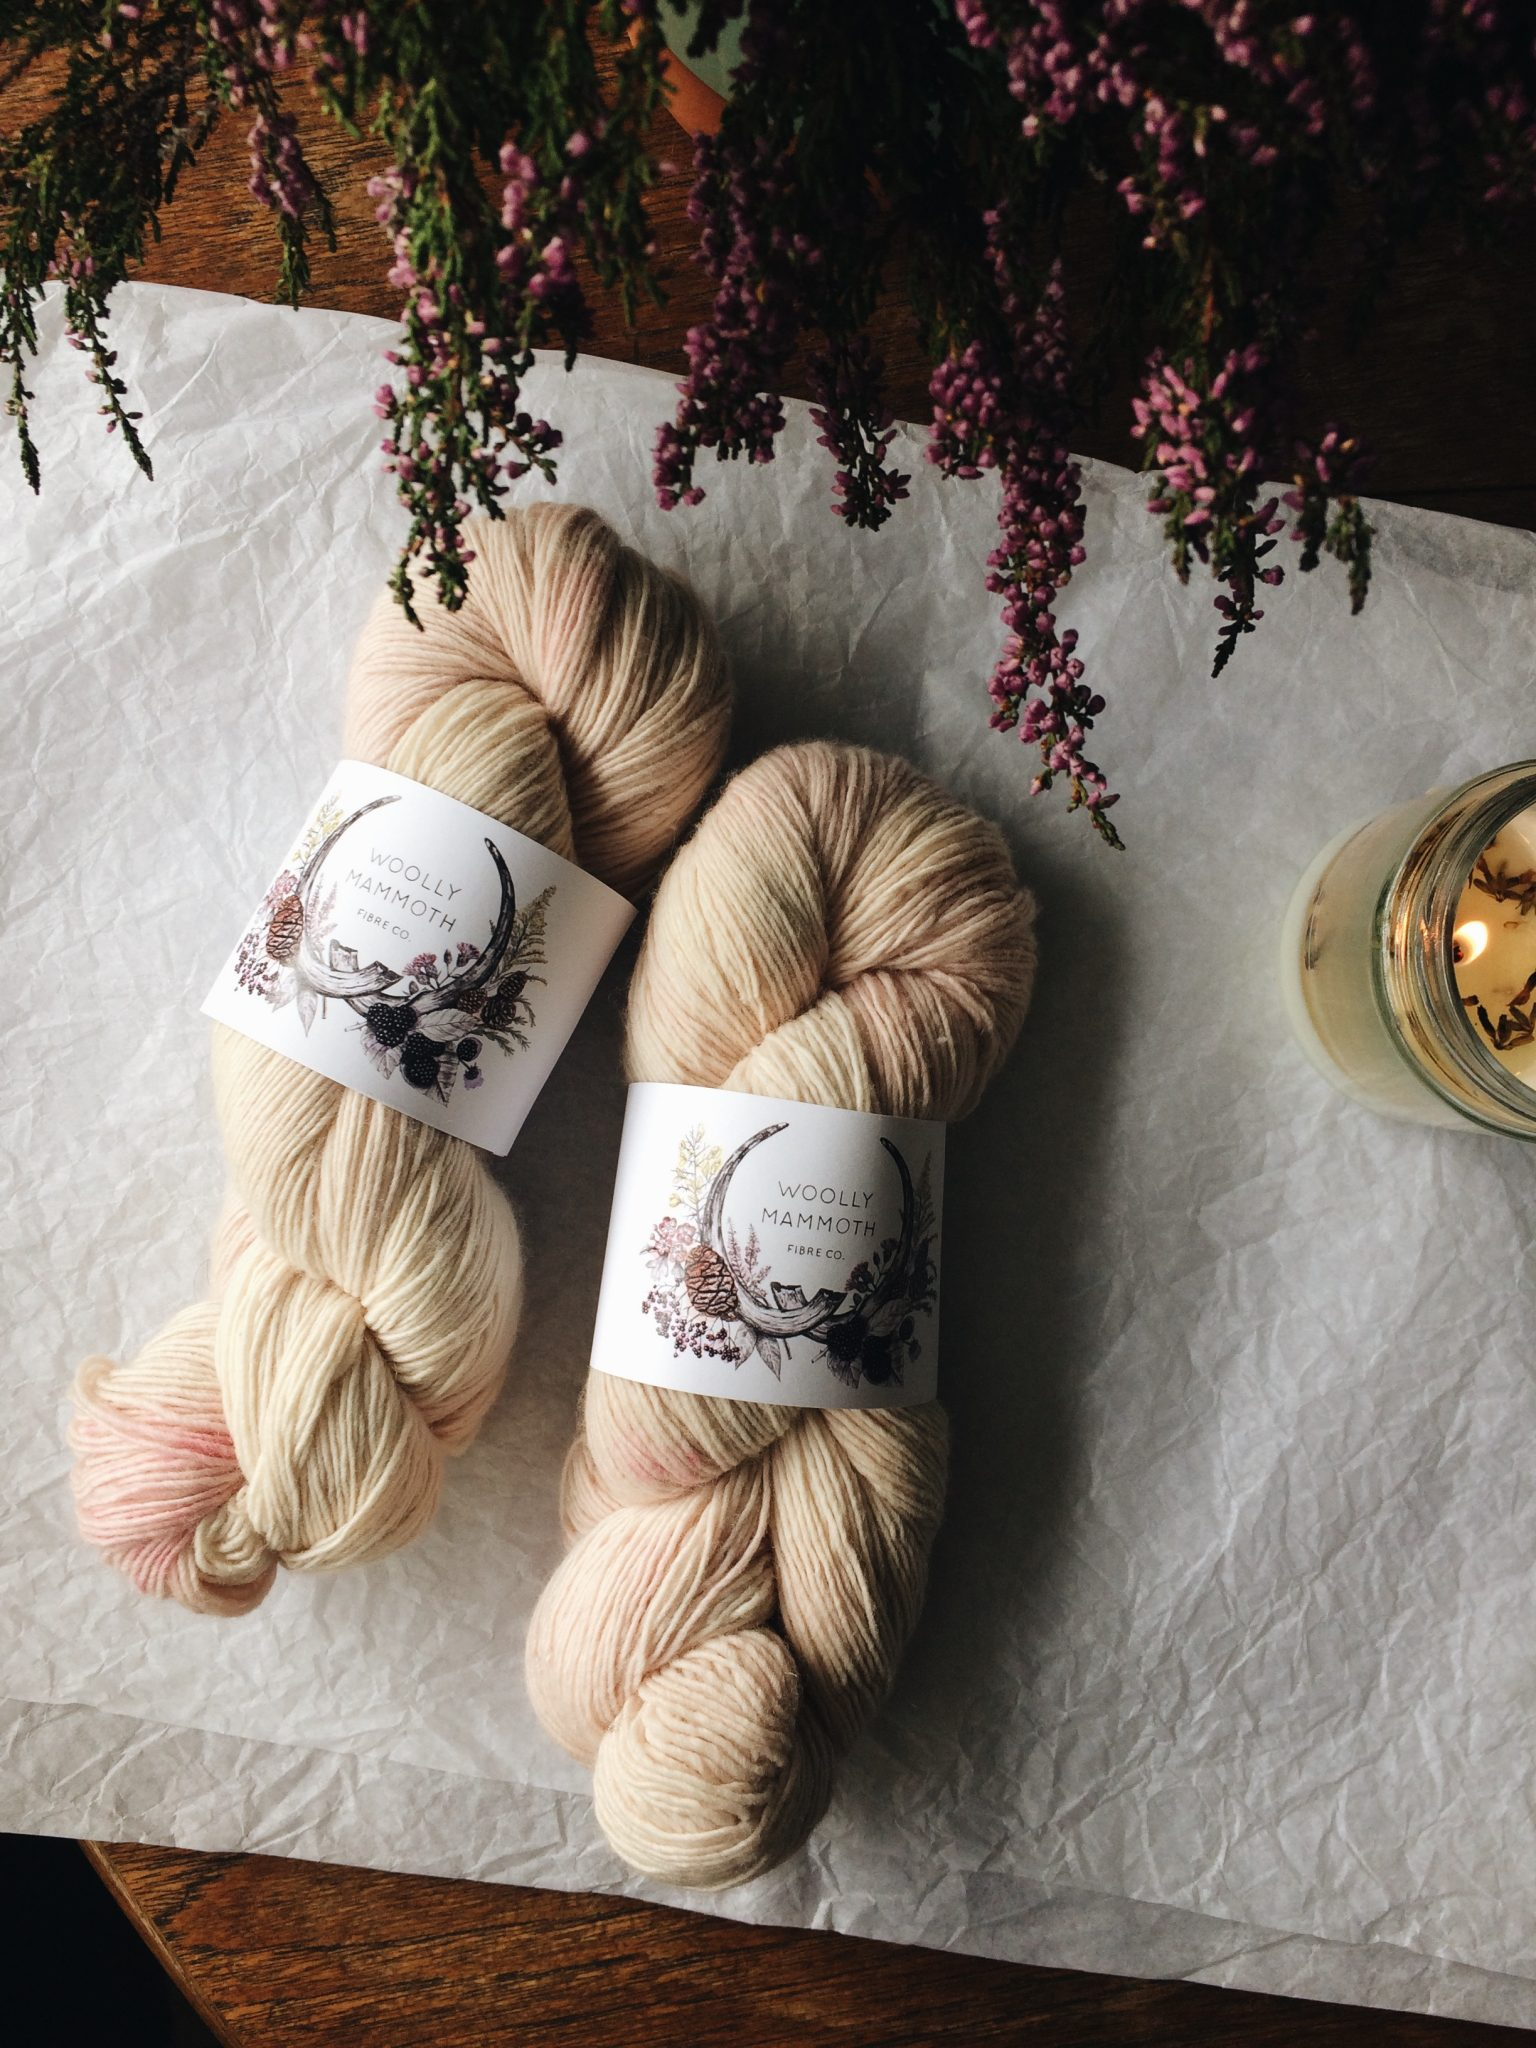 The Woolly Mammoth Fibre Co. on the Cottage Notebook